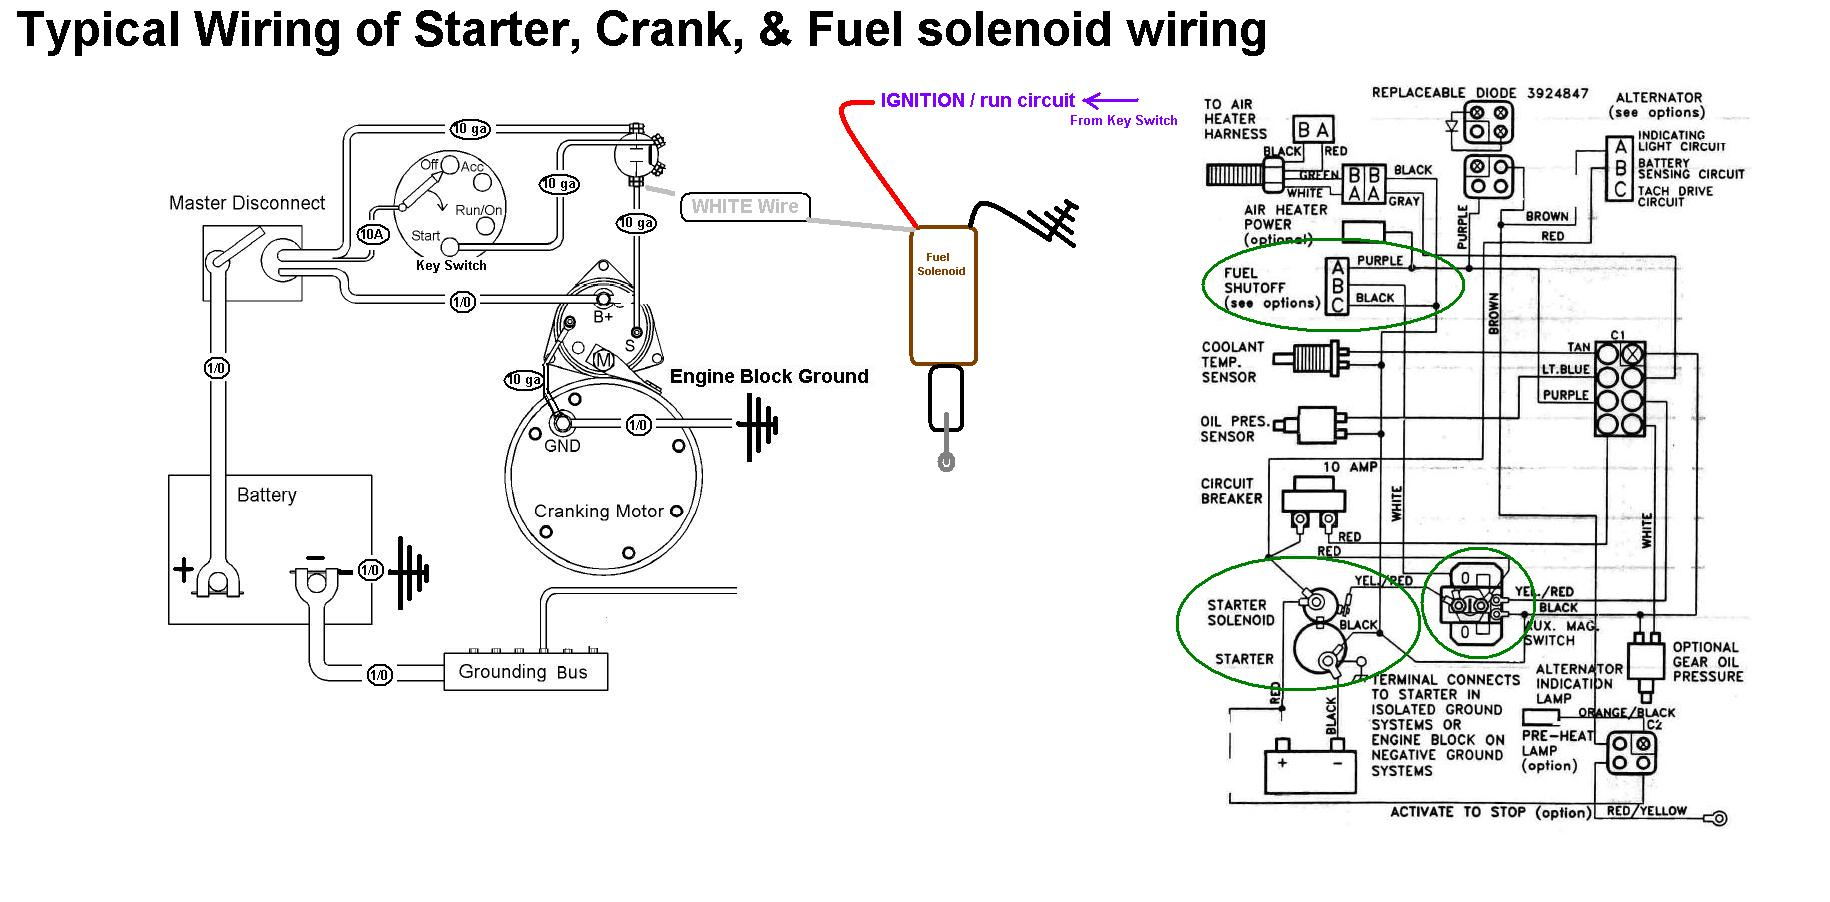 Starter Crank Fuel Shutoff Solenoid Wiring on Gy6 Engine Wiring Diagram